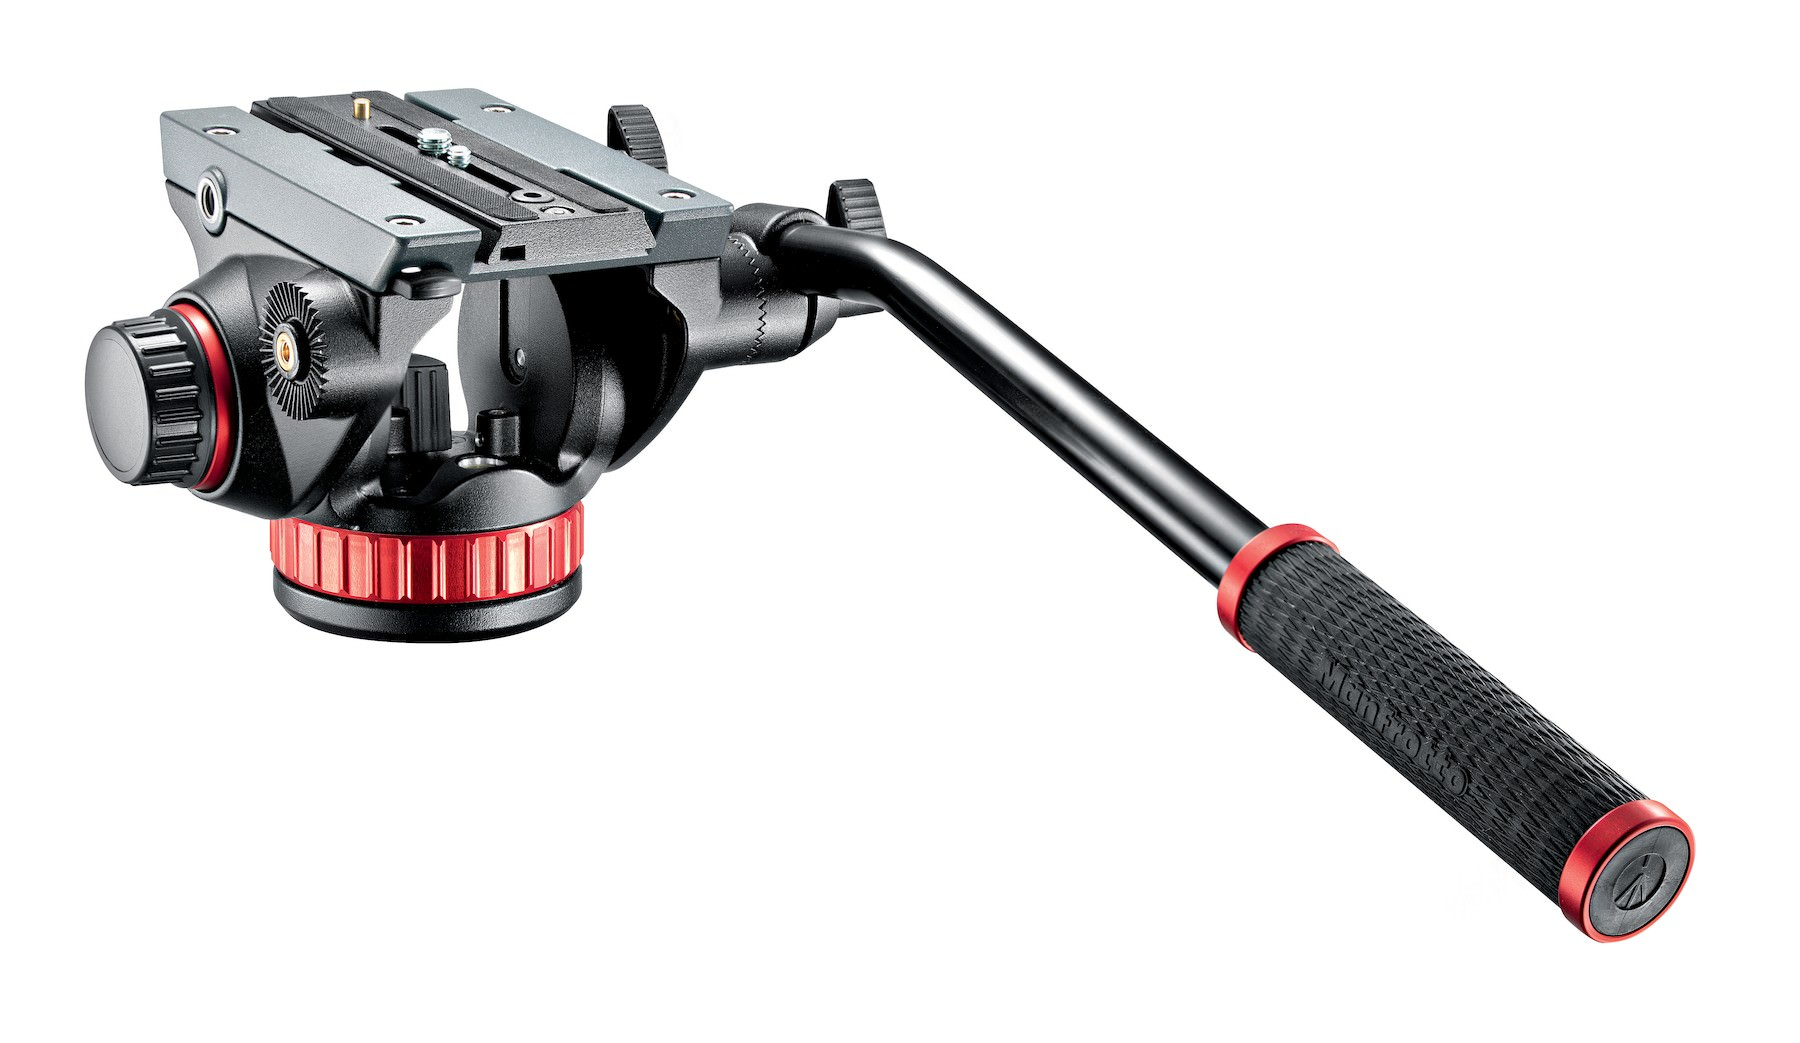 Manfrotto Video Tripod